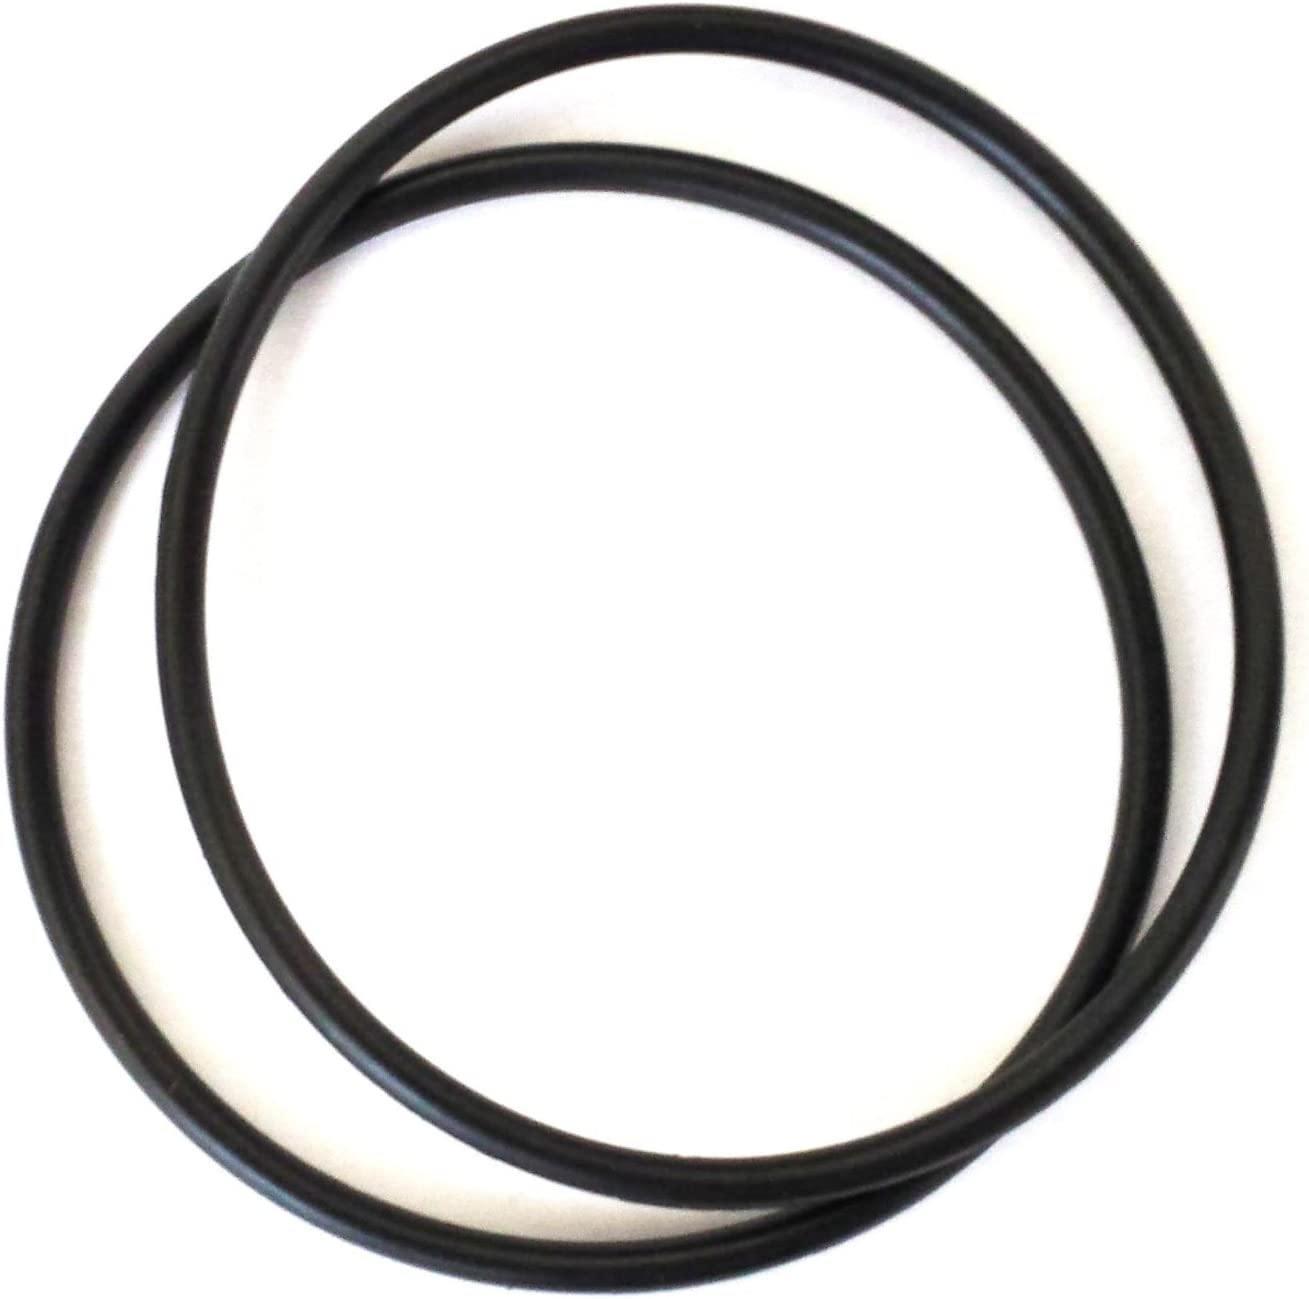 Pack of 10 3//32 Thickness 0.250 Inscribe Circle Size UD2 Grade 0.031 Corner Radius 11 Degree Positive Clearance Angle Ultra-Dex TPMT 21.52 UD2 Triangle Insert